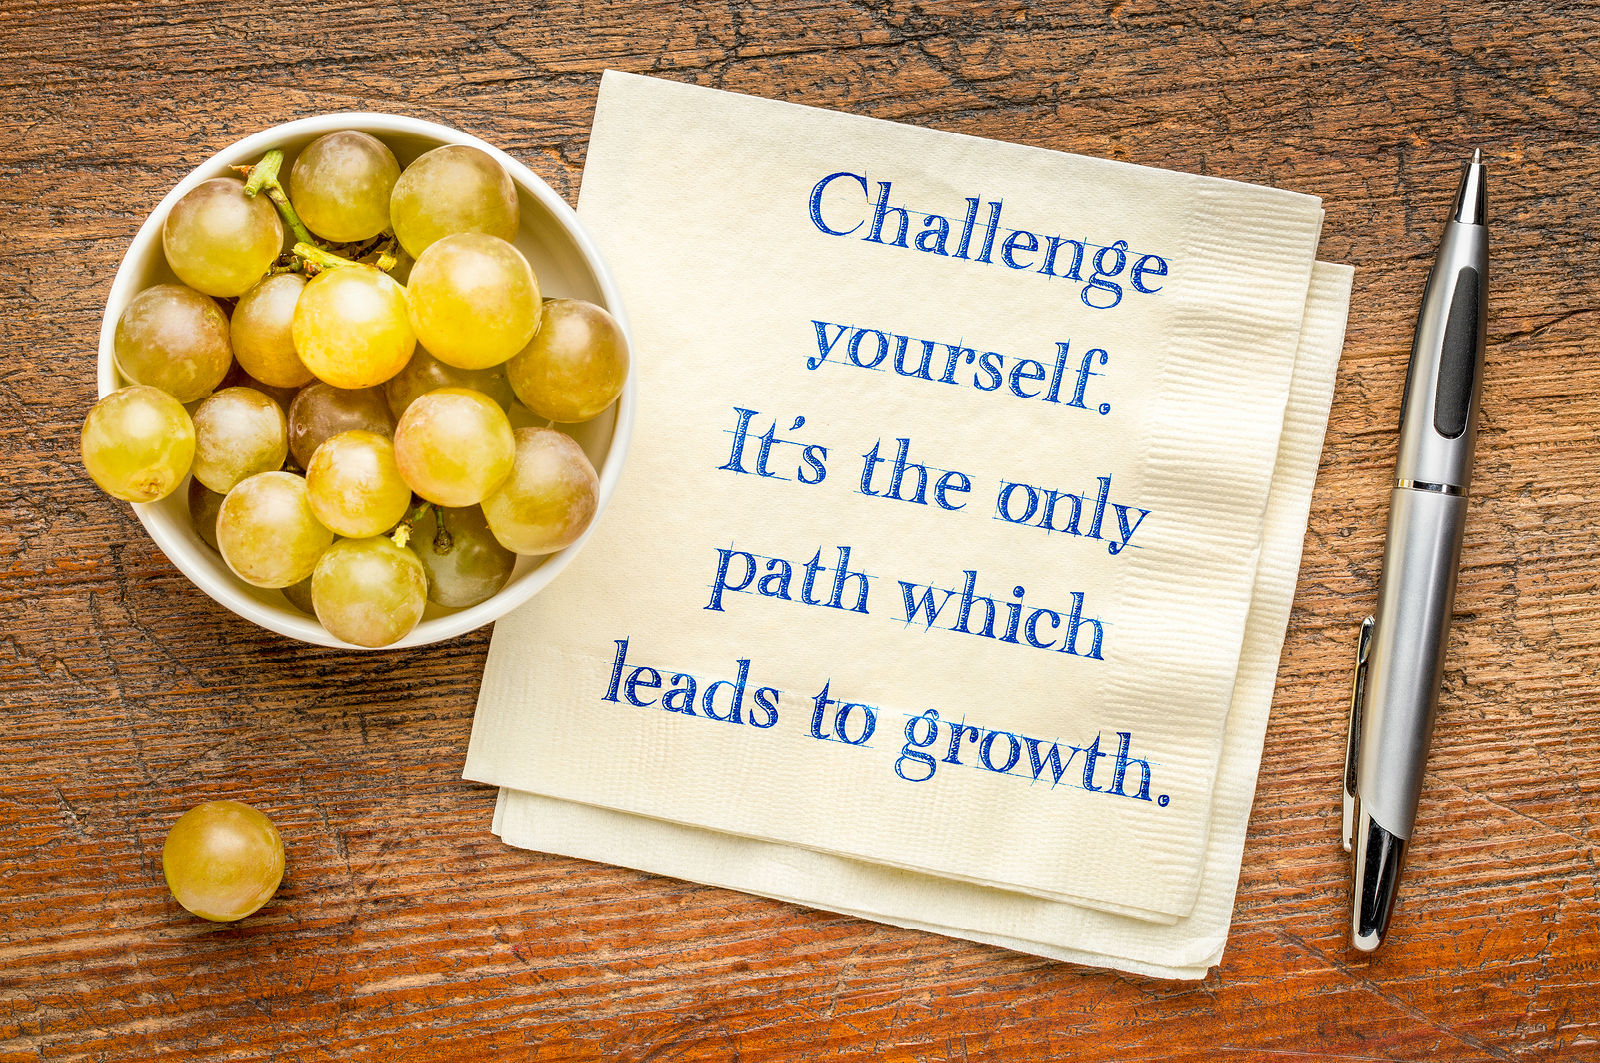 Transform Your Life For The Better By Trying These 3 Challenges